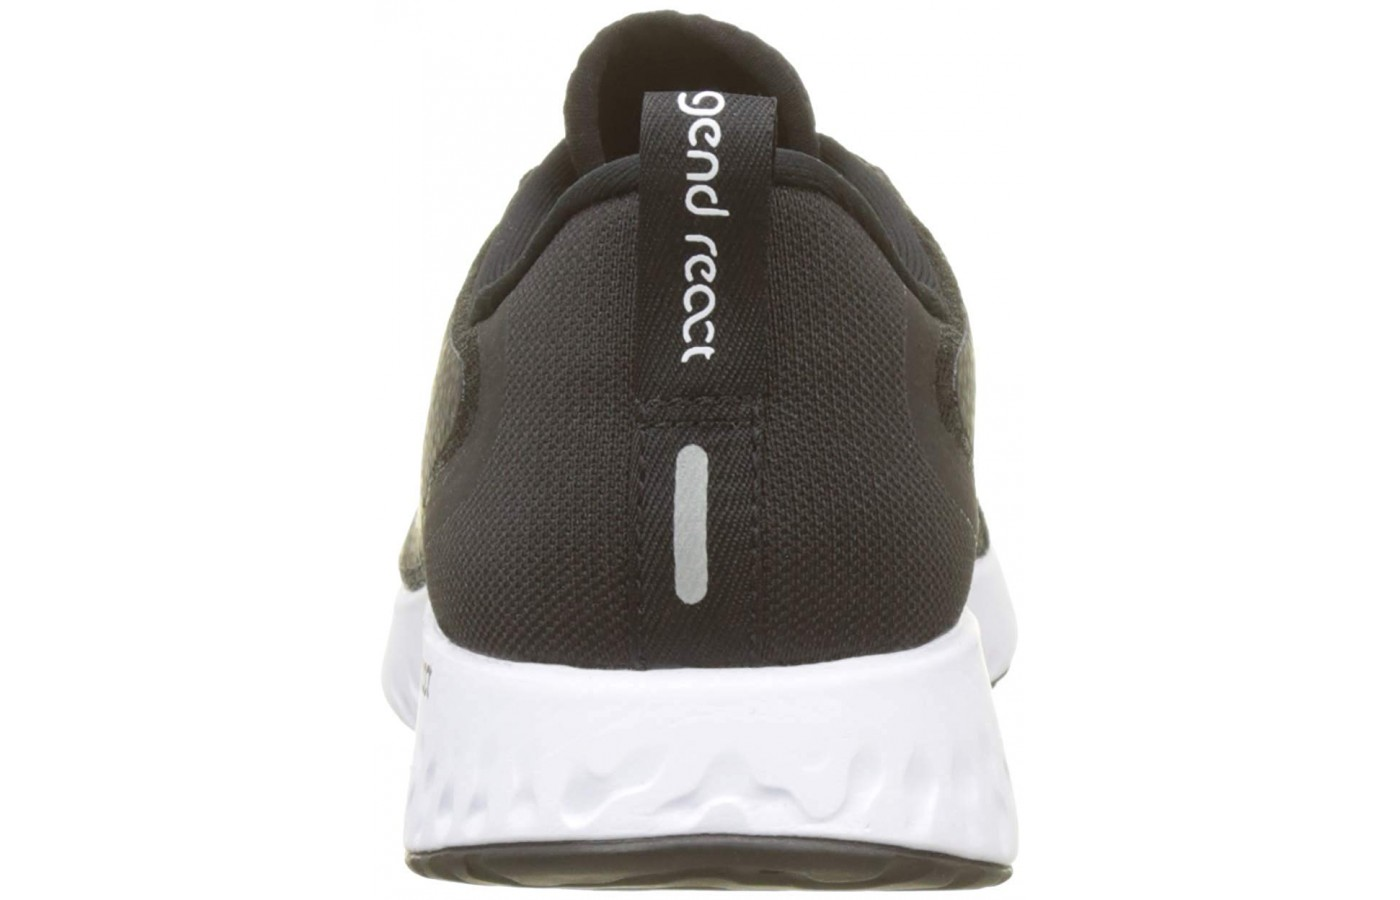 The shoes can be worn with or without socks.